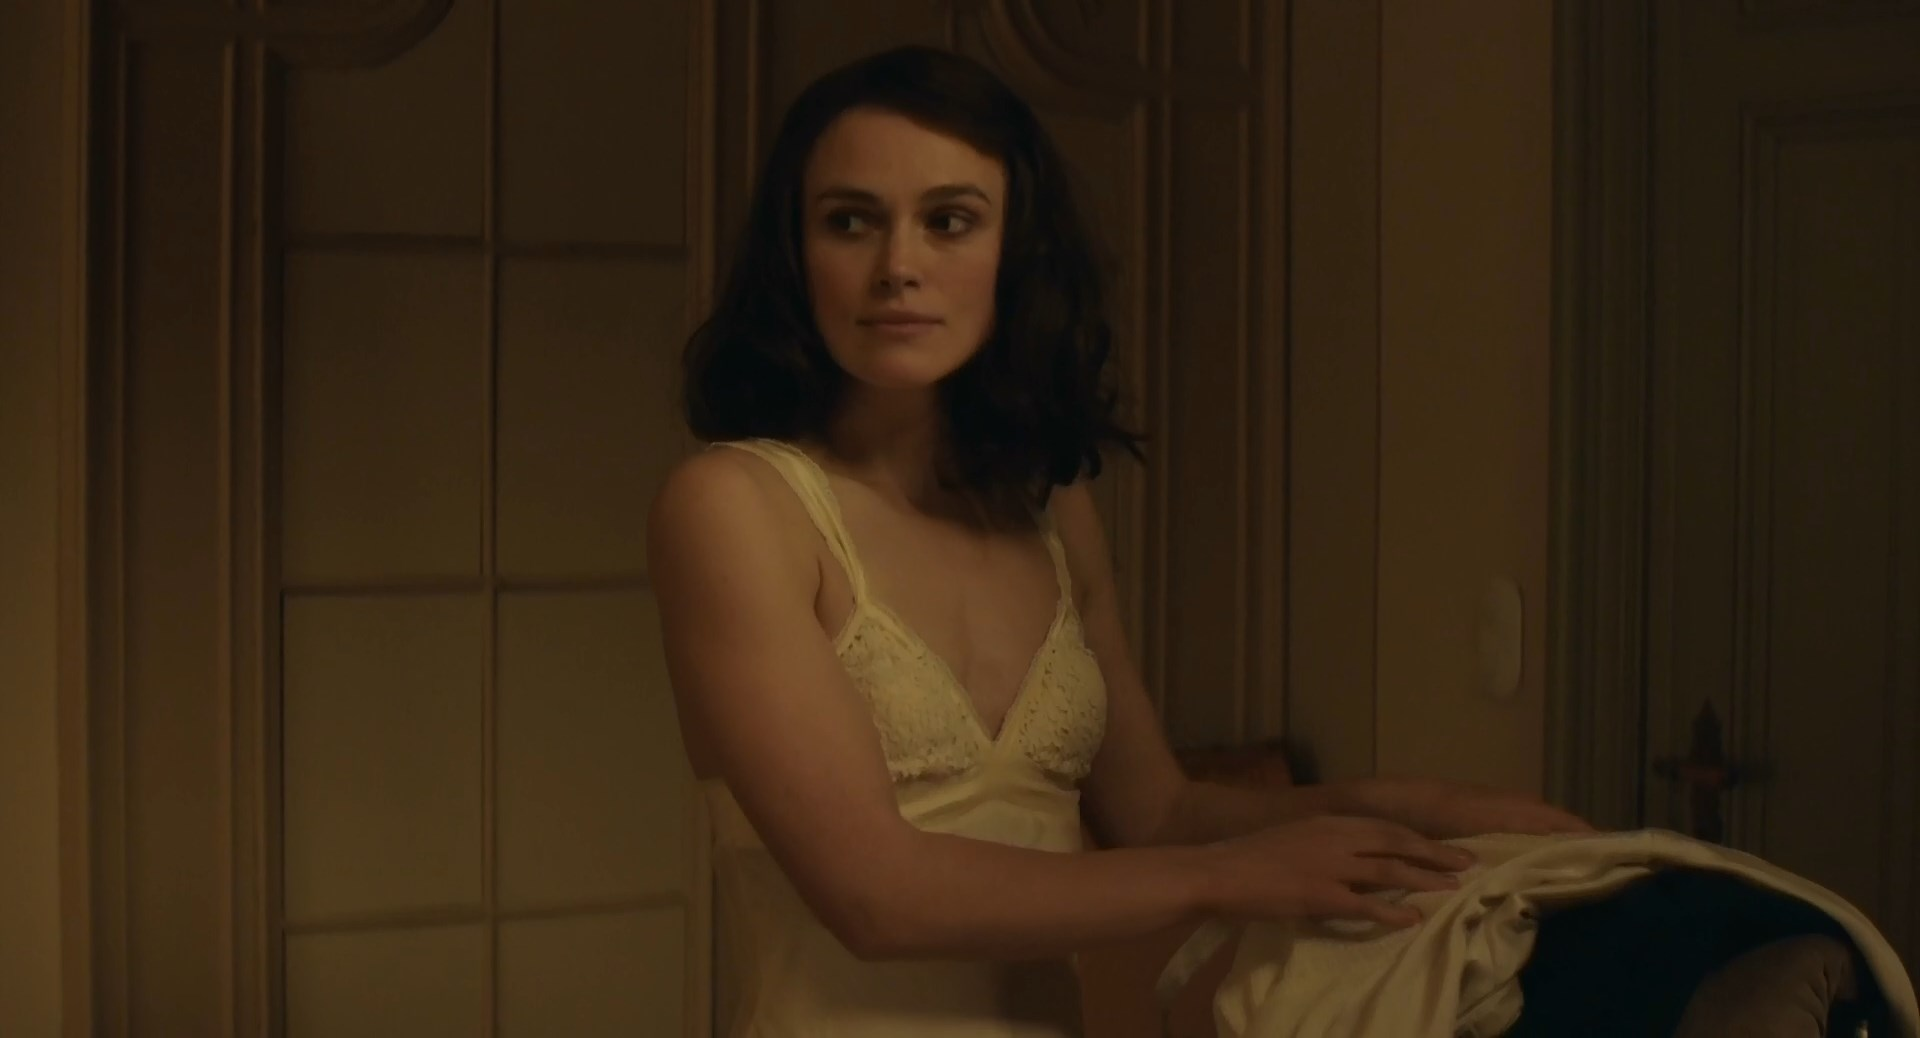 Aftermath Porn Movie watch online - keira knightley - the aftermath (2019) 1080p